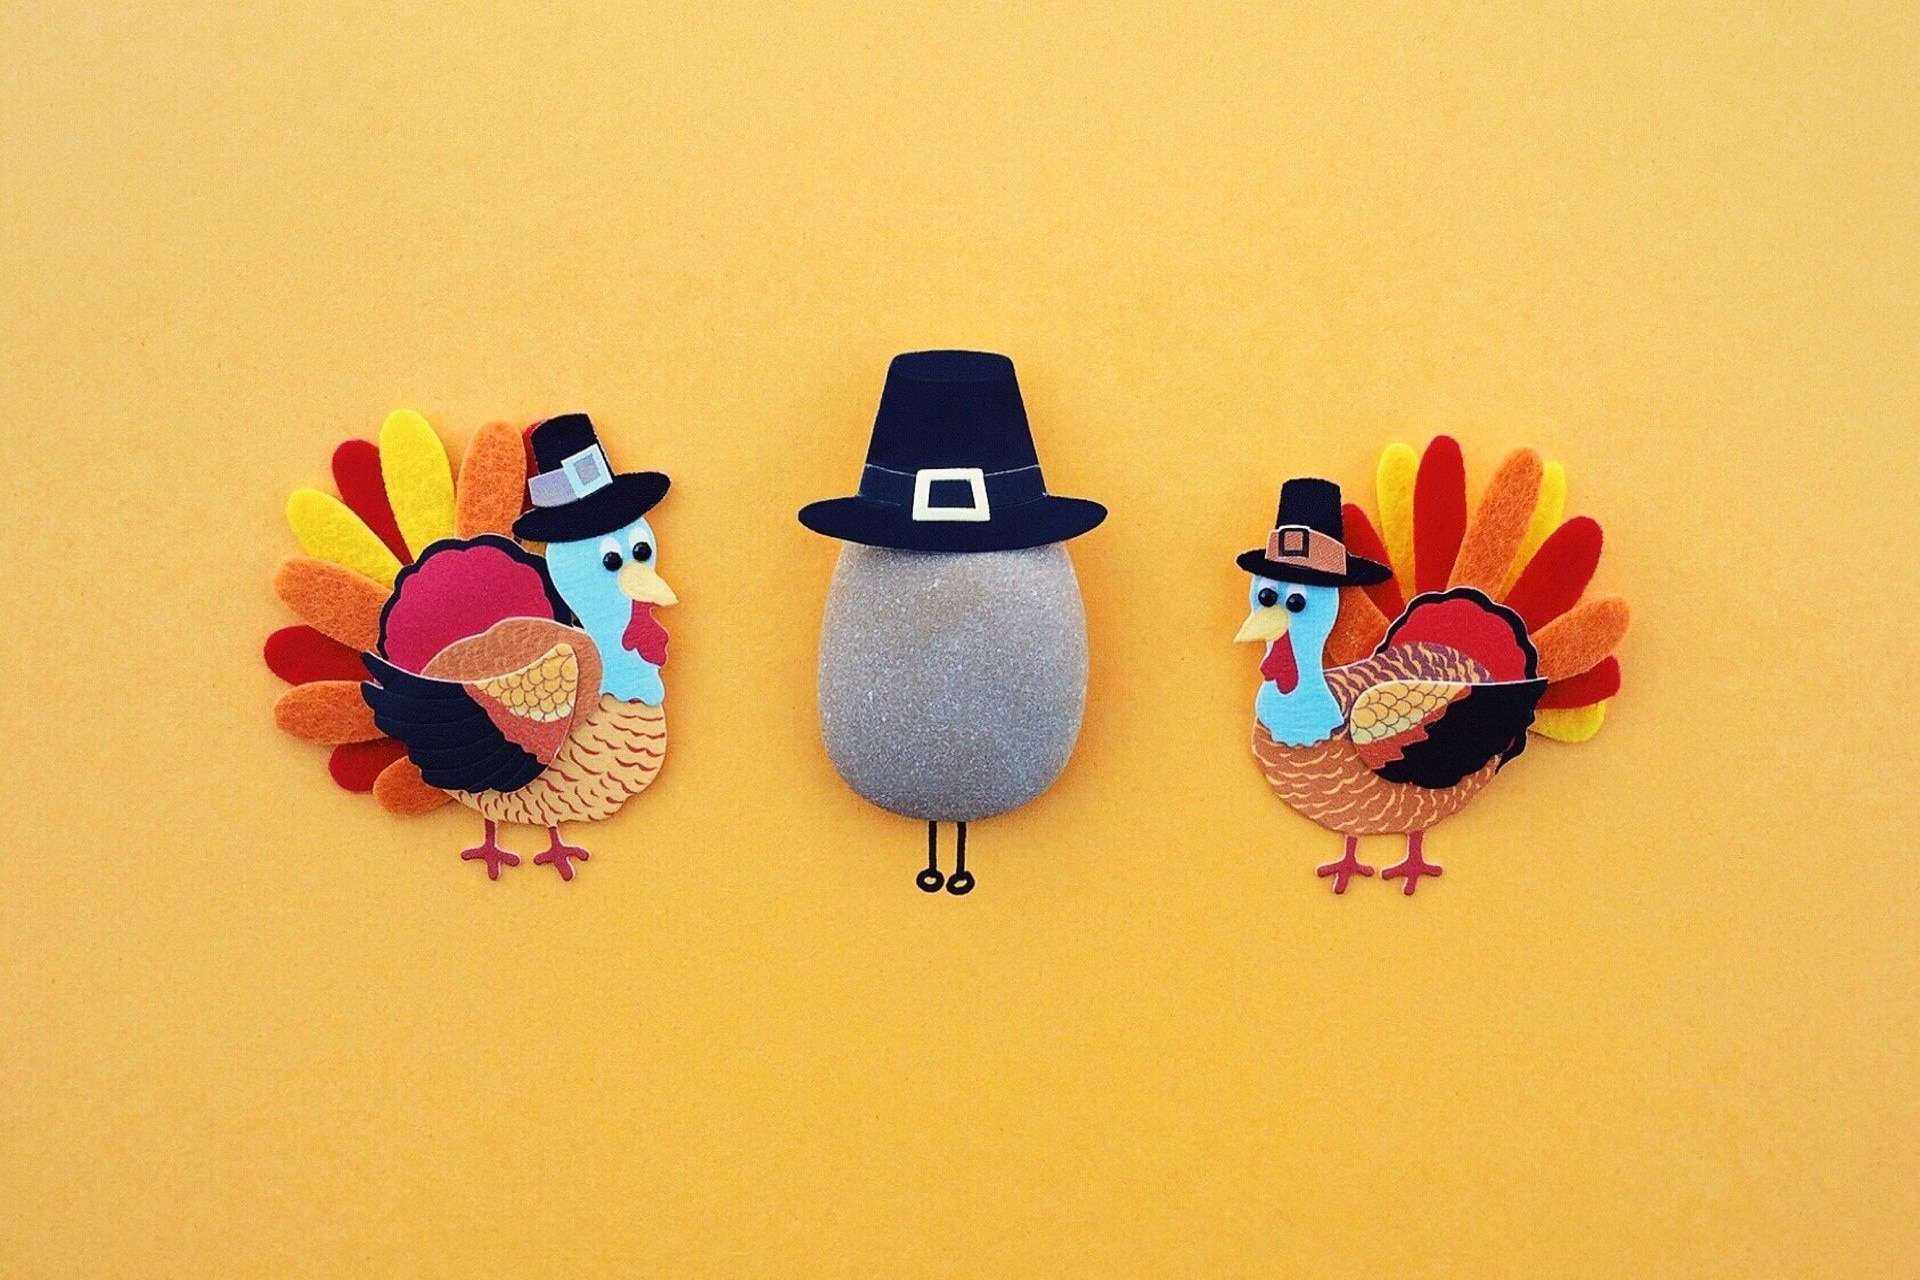 two Turkey crafts in pilgtim hats on either side of a rock also with a pilgrim hat